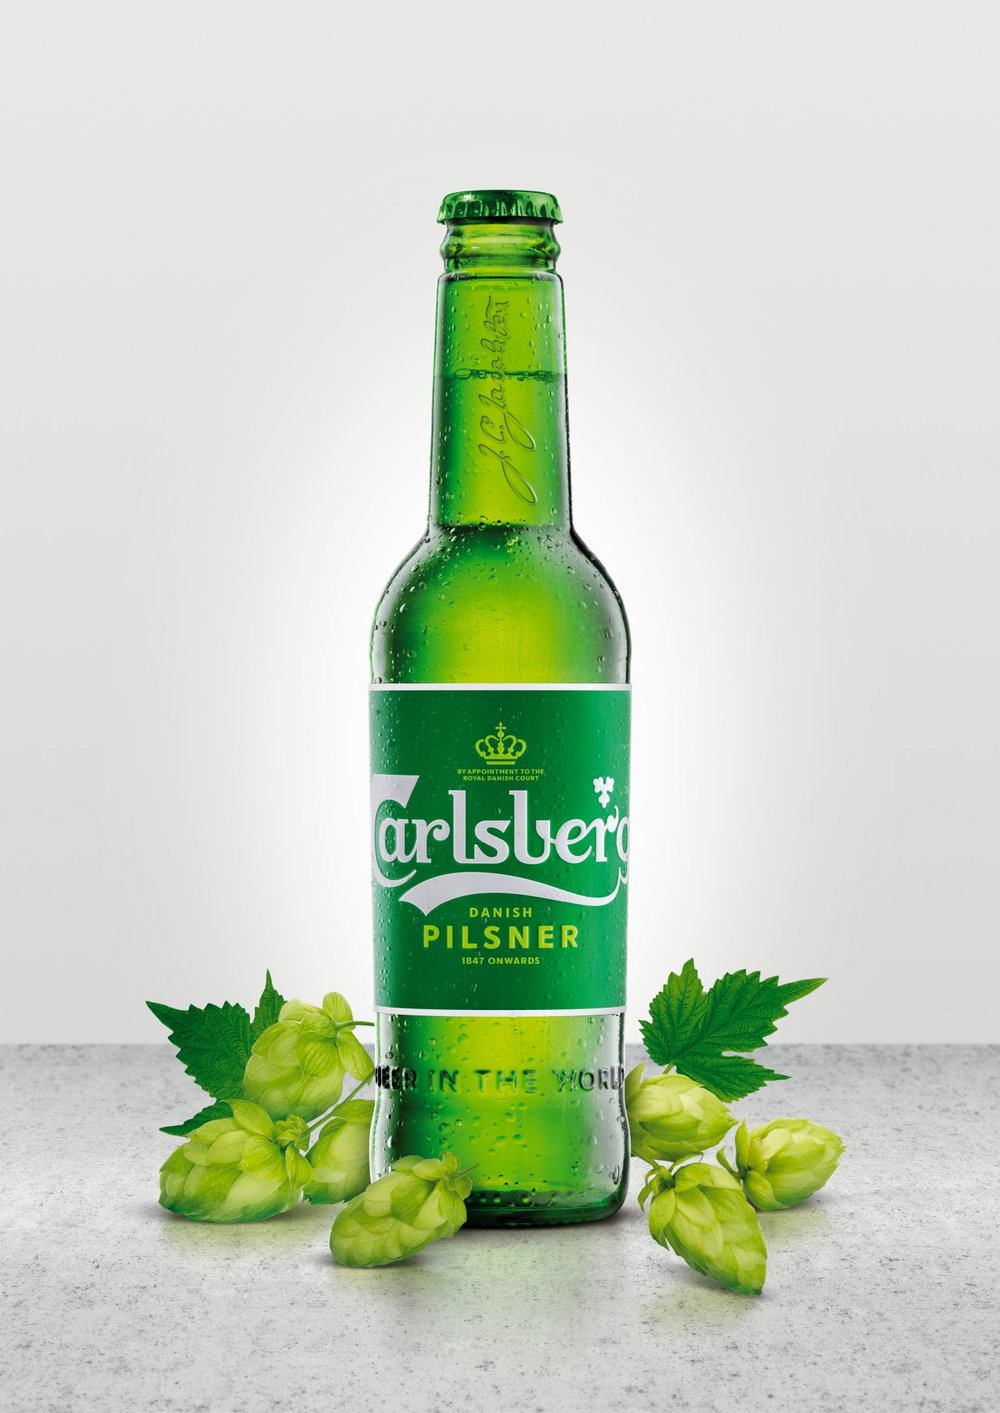 carlsberg_bottle_02.jpg